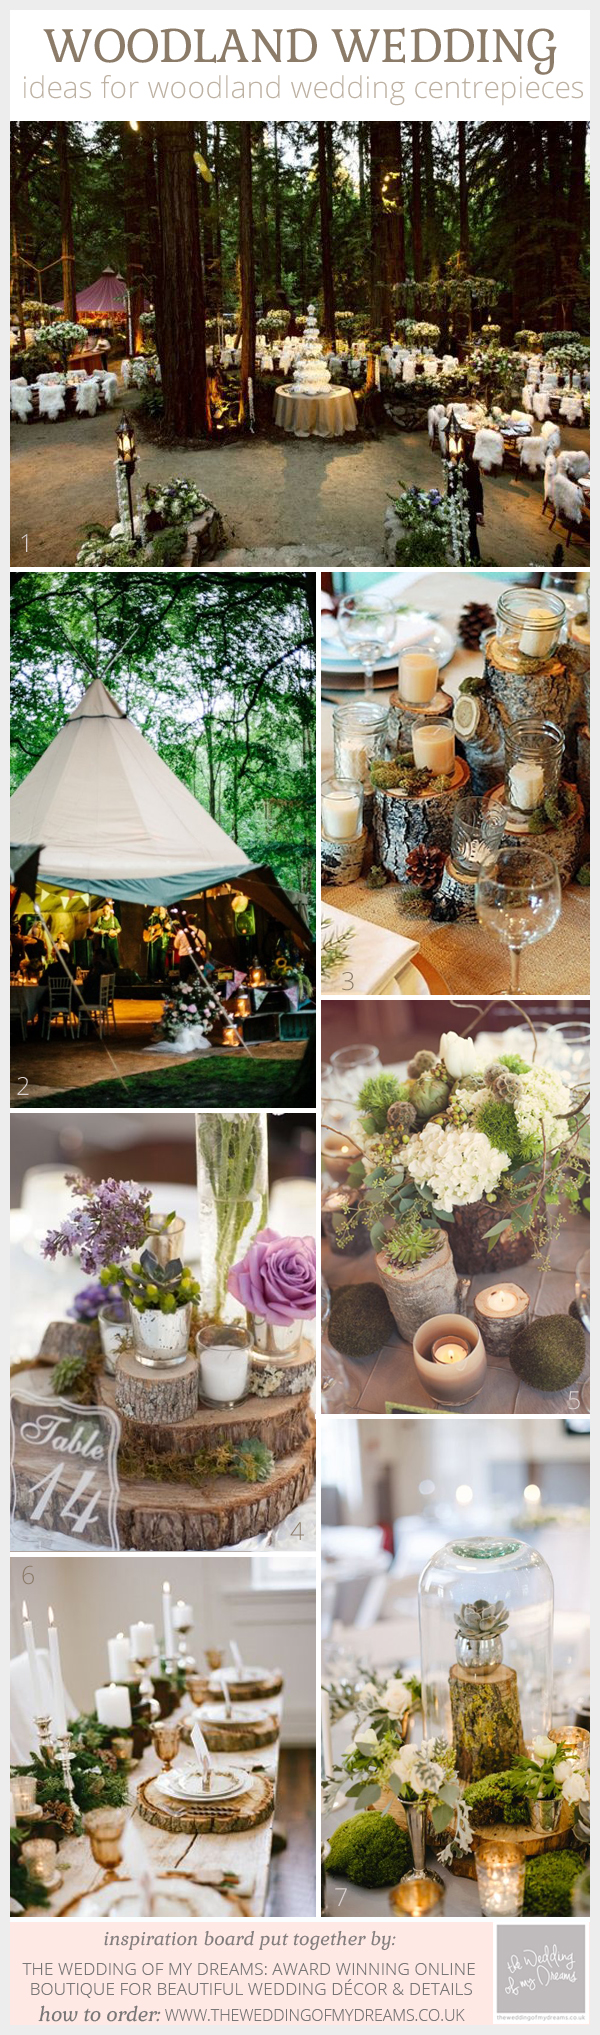 woodland wedding centrepiece ideas